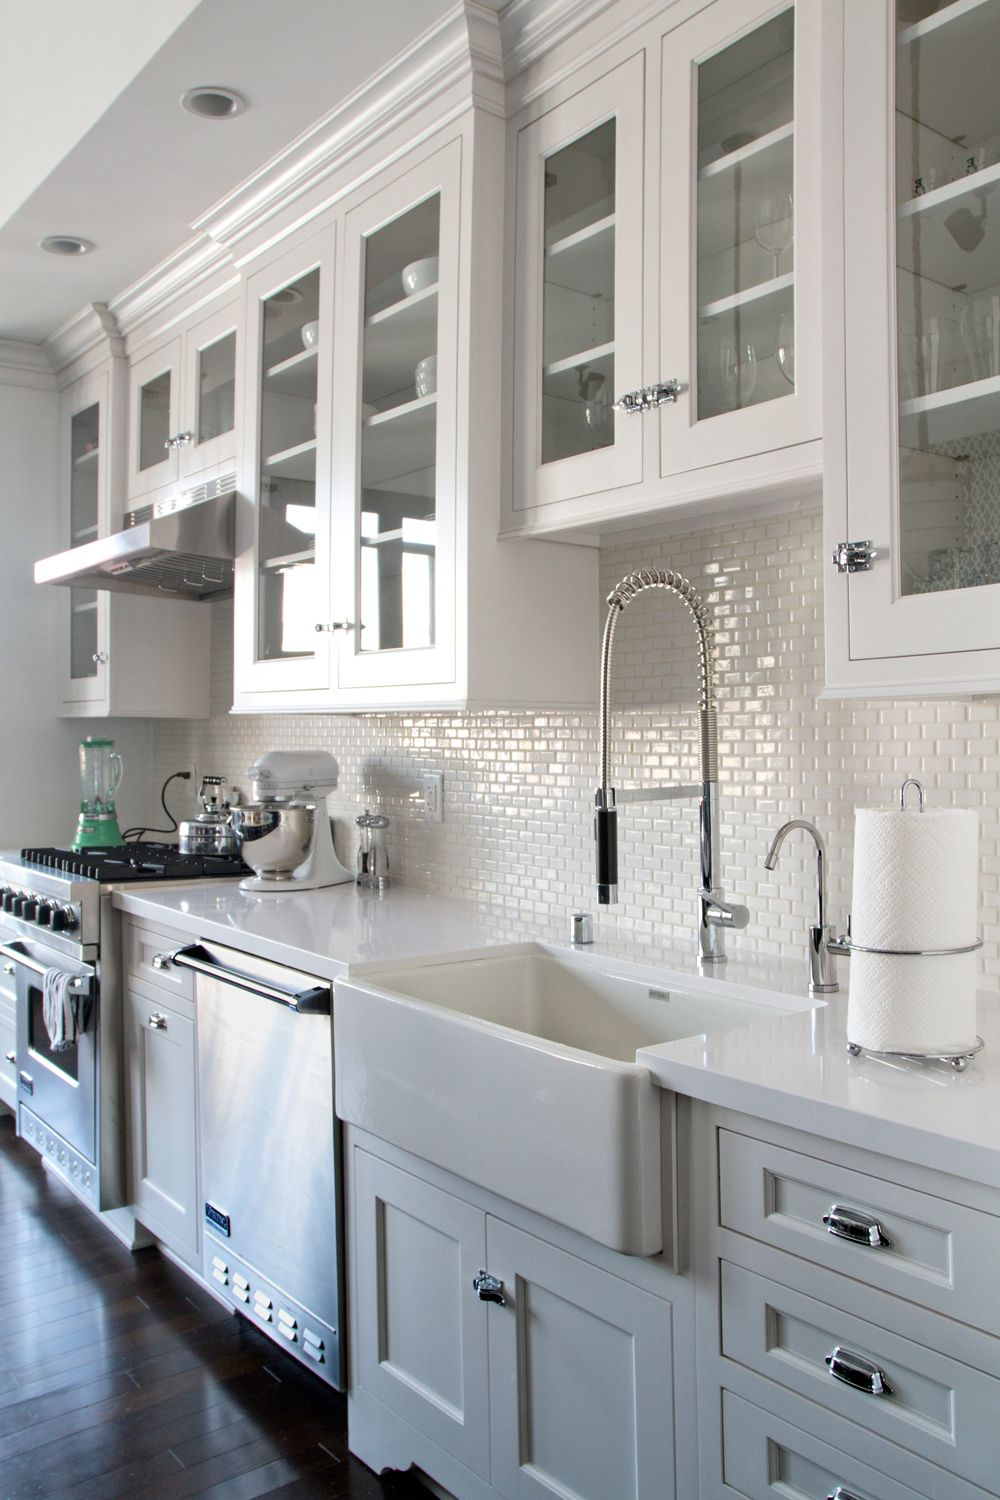 White Mini Glass Subway Tile Backsplash In Modern All White Kitchen. Bottom  Cabinets, Sink And Stainless Steel Appliances Are A Yes.